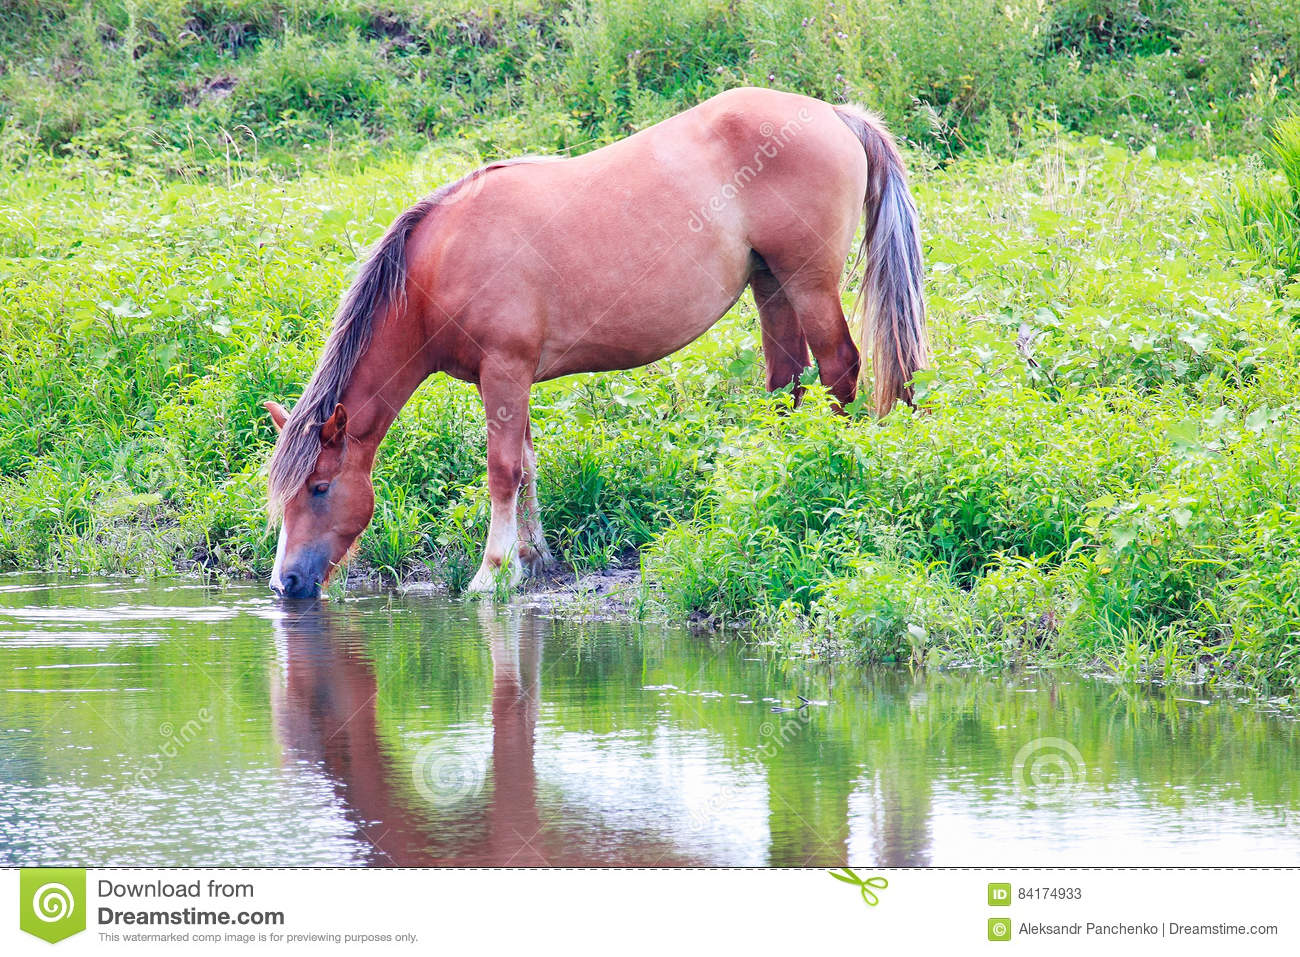 Horse drinking water from the river